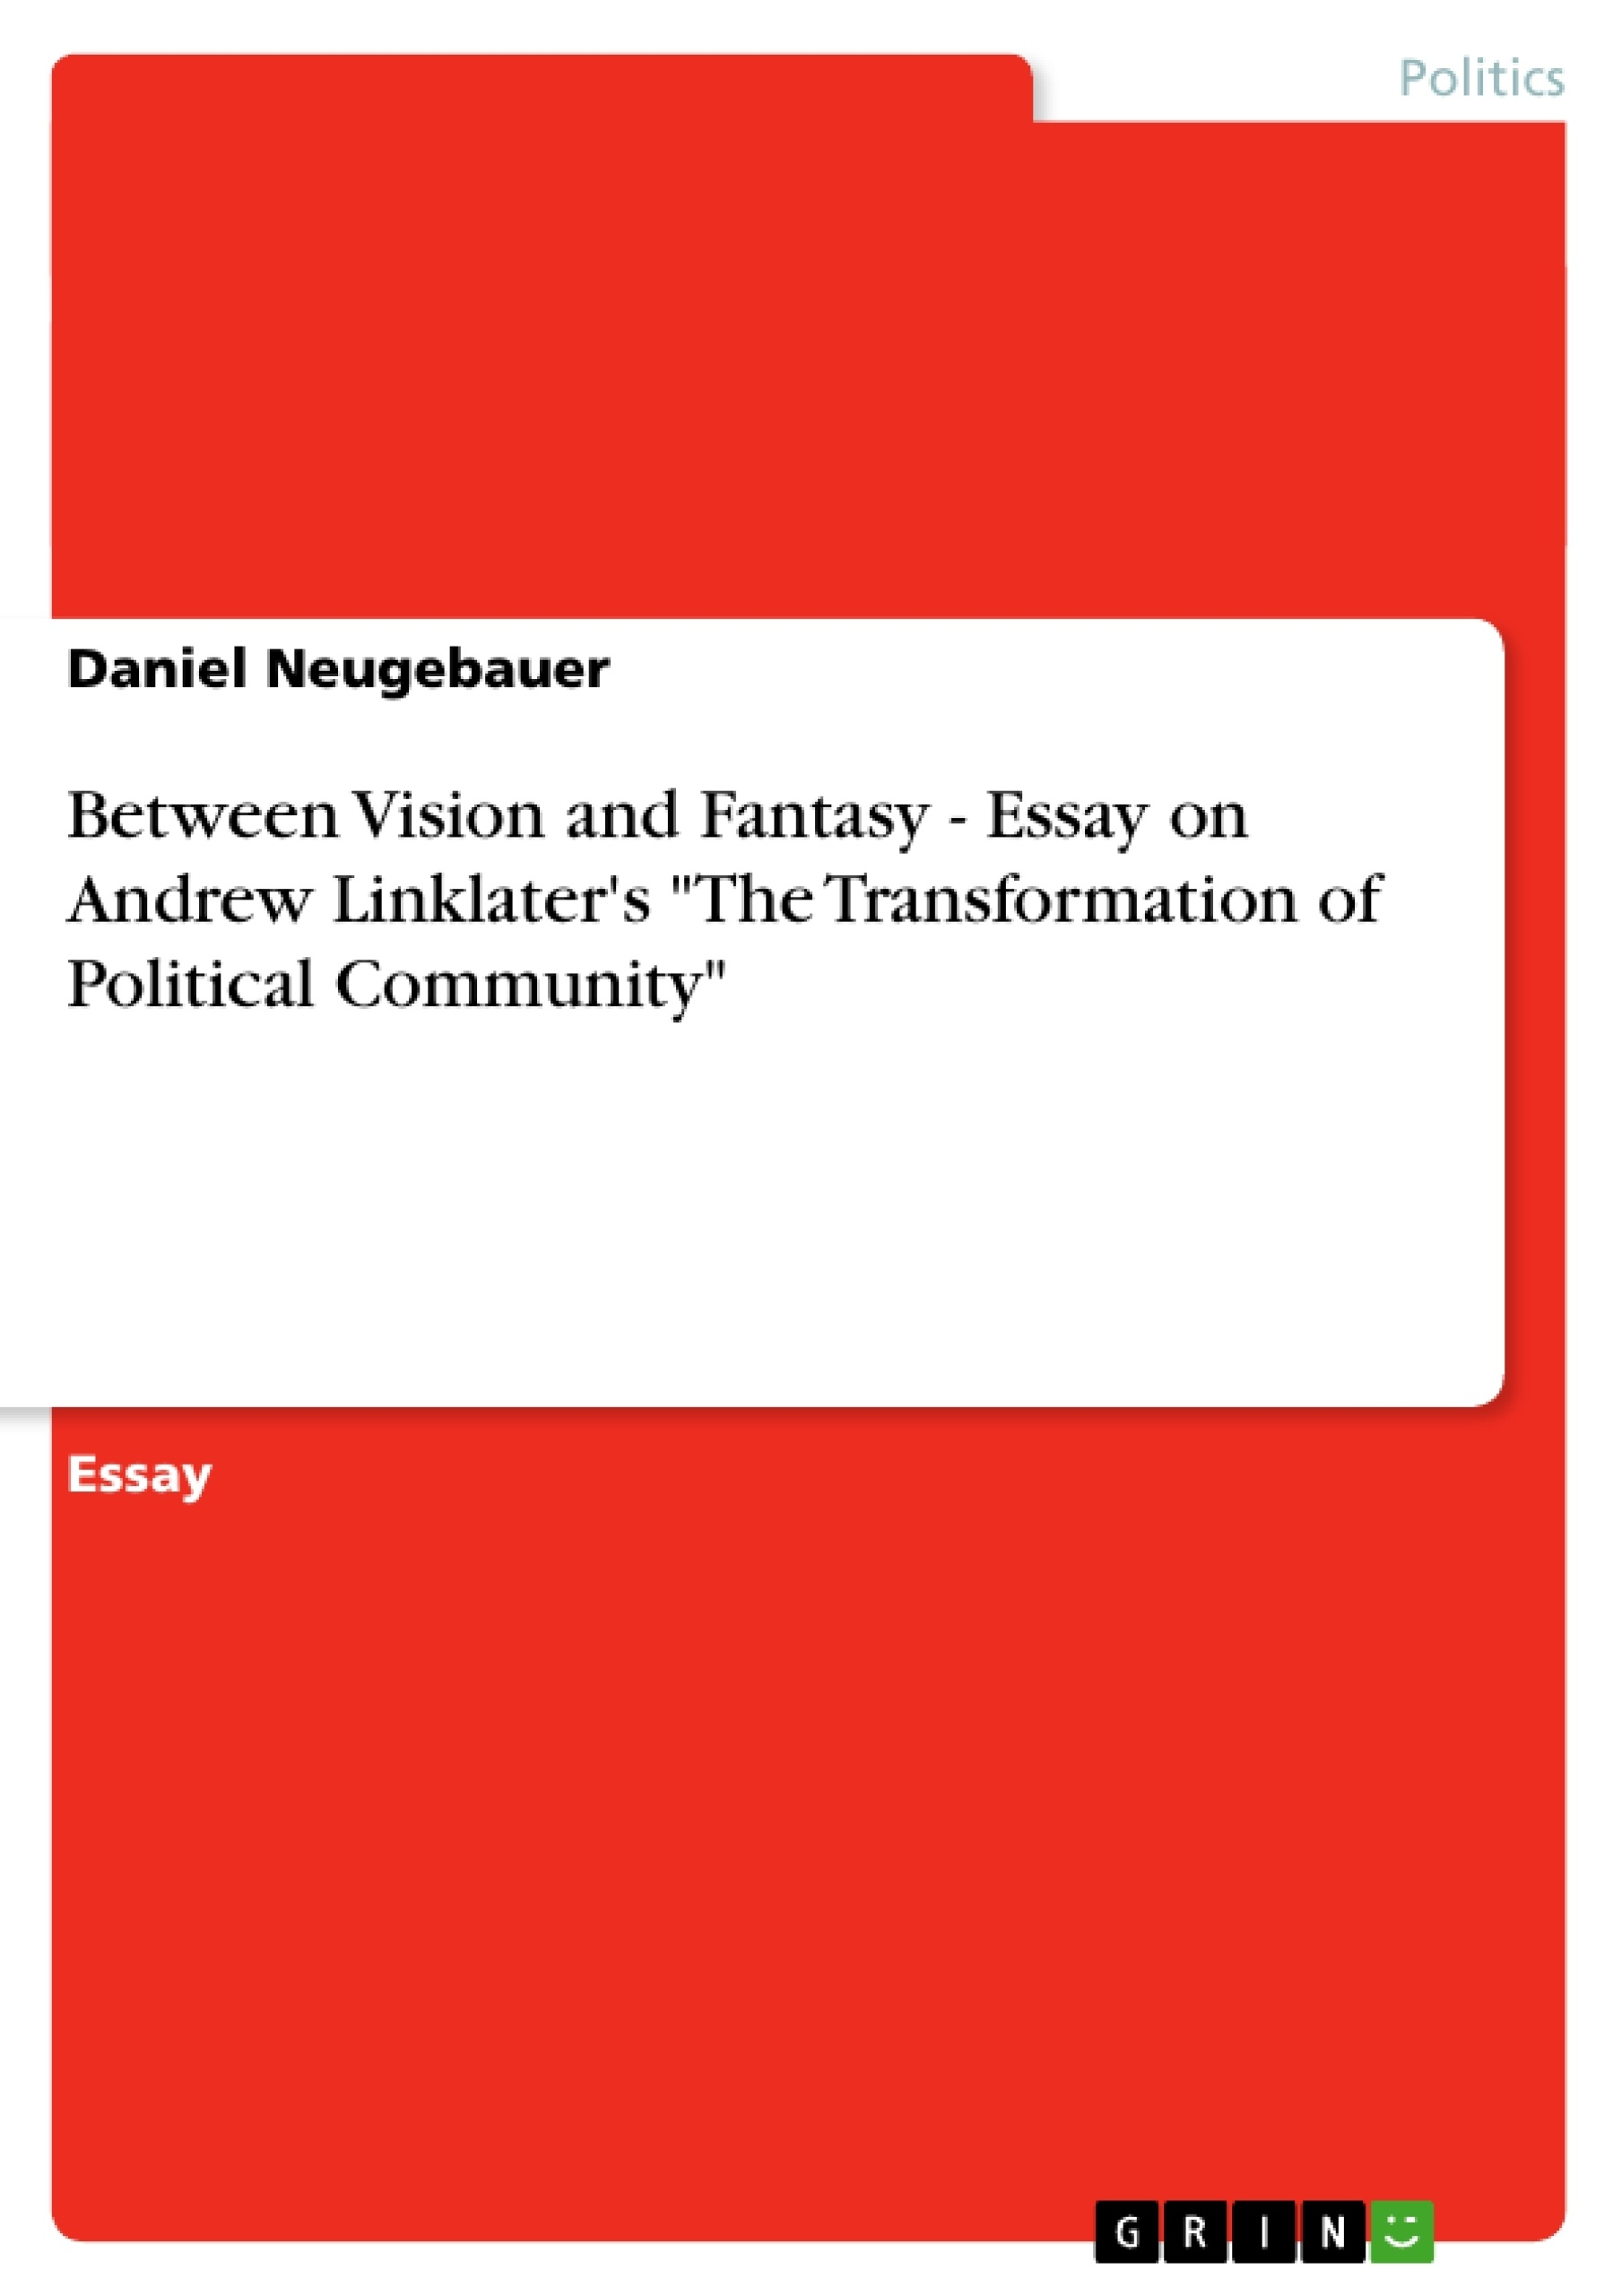 """Title: Between Vision and Fantasy - Essay on Andrew Linklater's """"The Transformation of Political Community"""""""